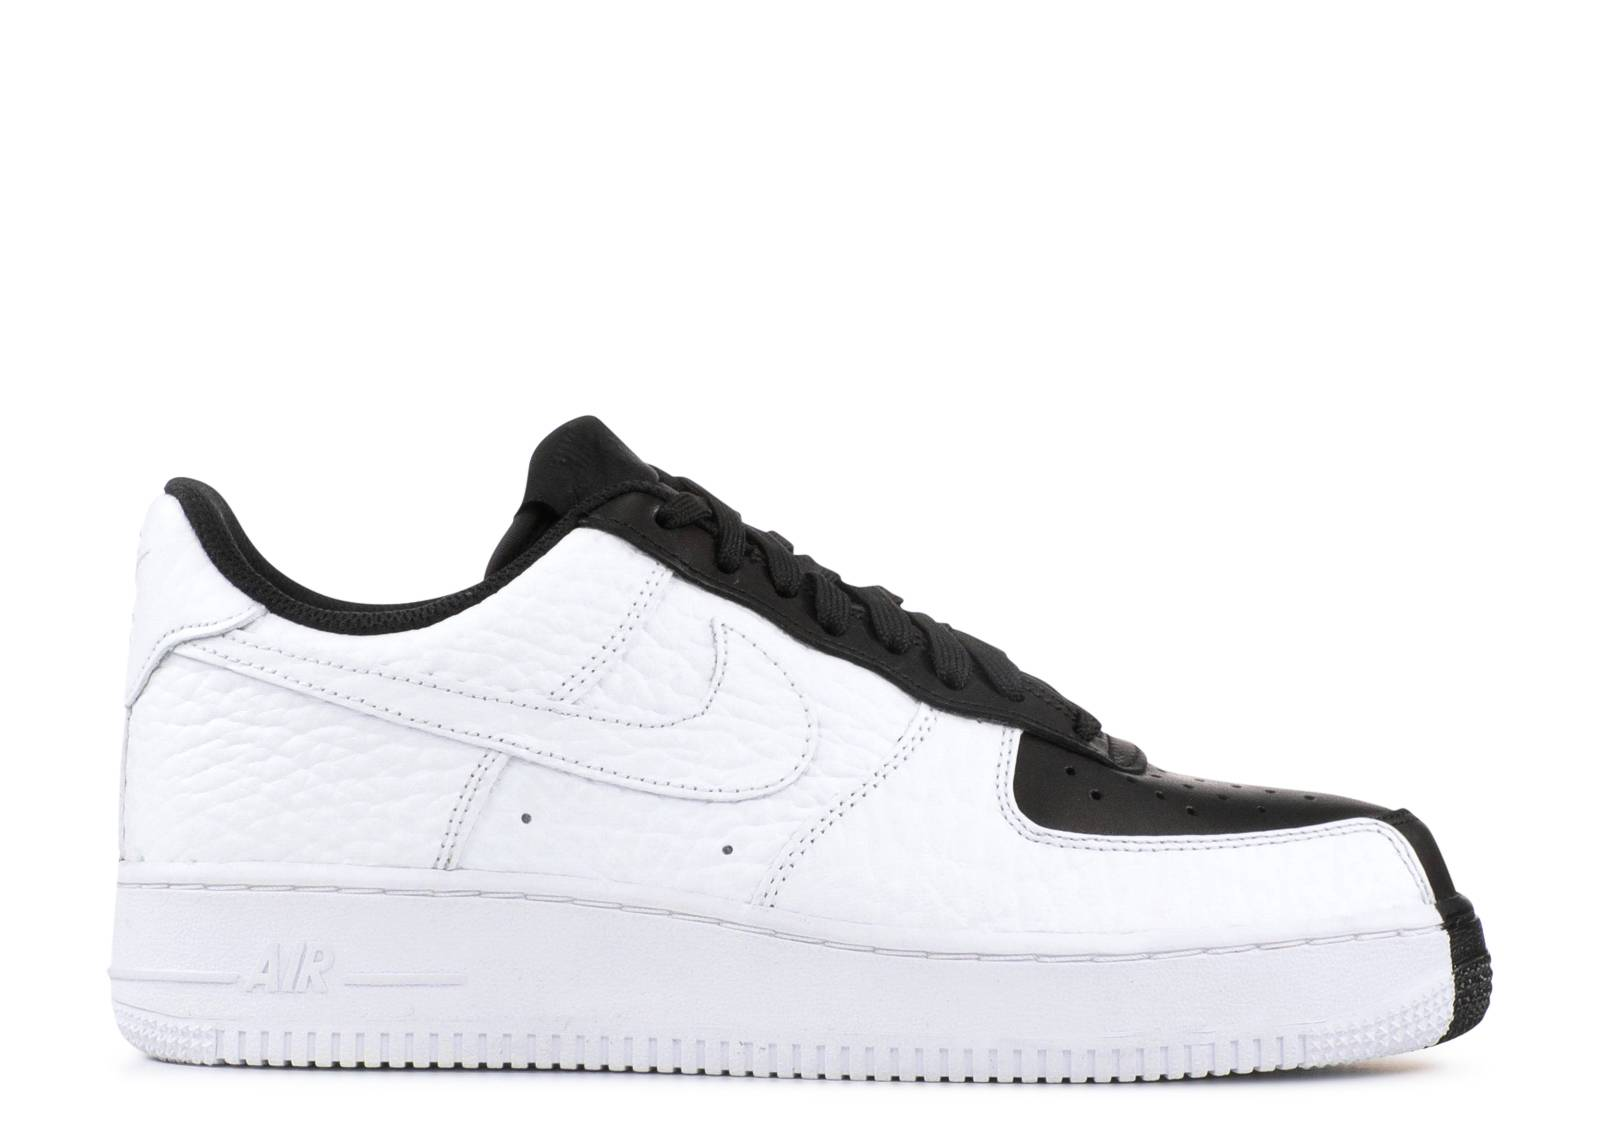 grand choix de ca7ed 81a77 Air Force 1 Low '07 LV8 'Split'